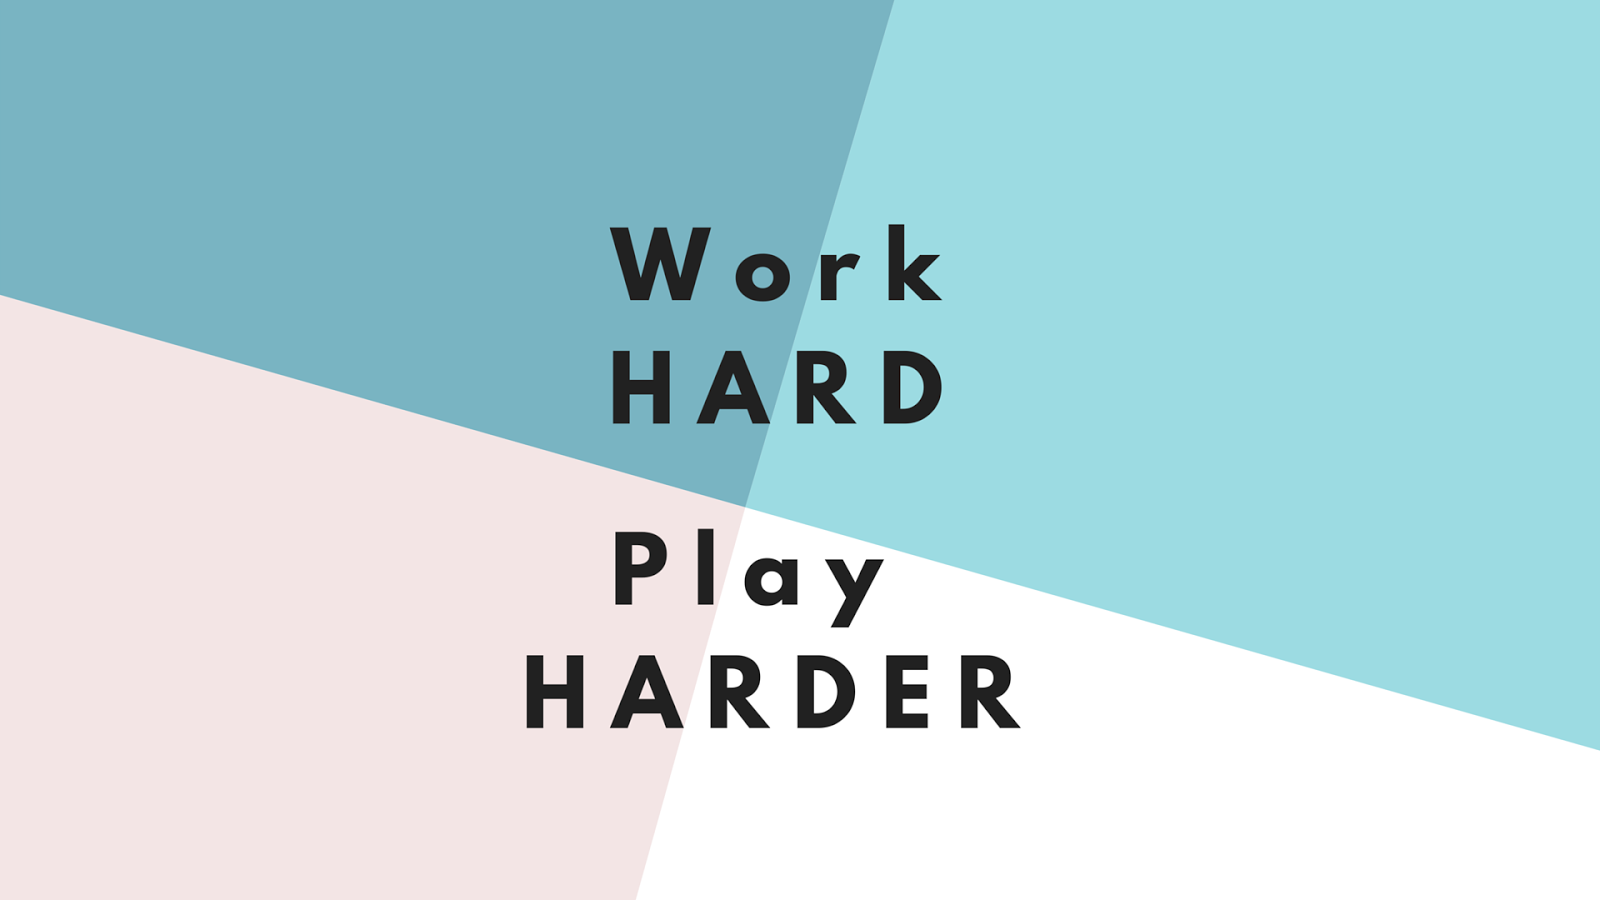 Improve Your Productivity With These 5 Free Desktop Wallpapers Free Desktop Wallpaper Desktop Wallpaper Art Work Hard Play Hard